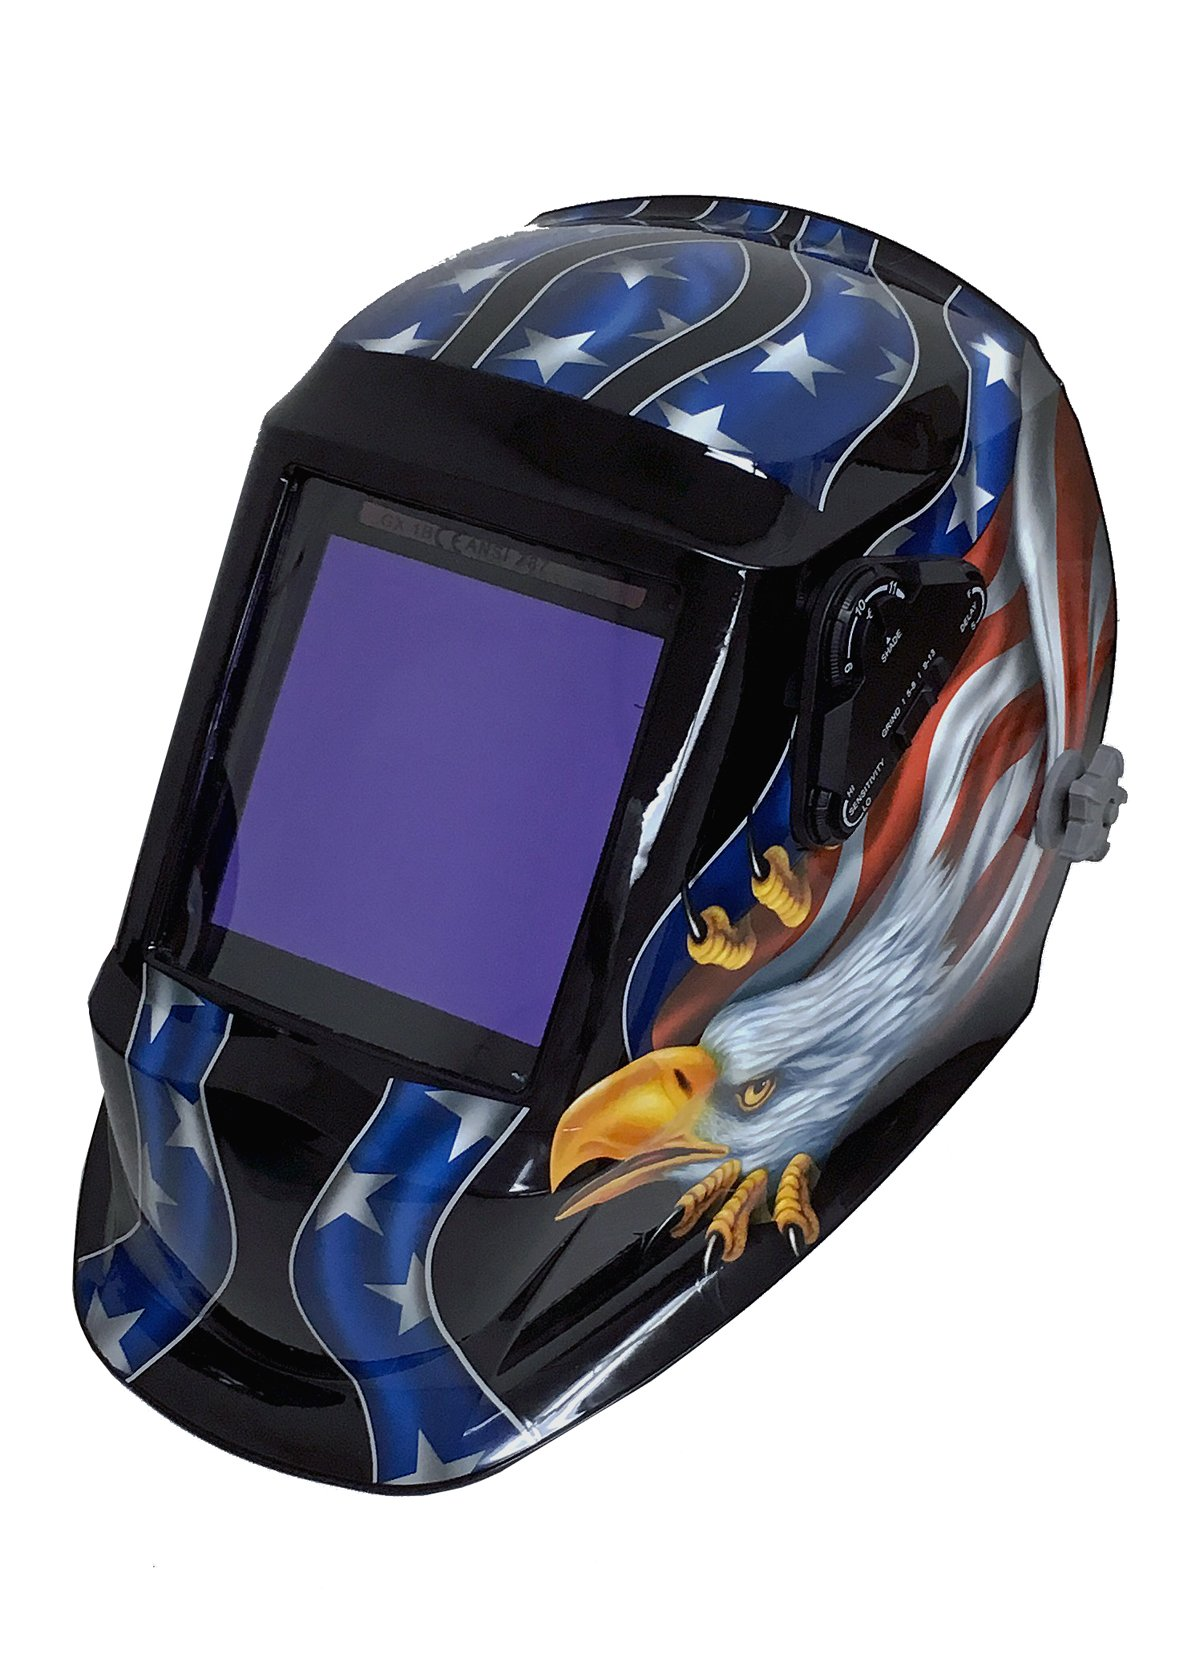 Instapark ADF Series GX990T Solar Powered Auto Darkening Welding Helmet with 4 Optical Sensors, 3.94'' X 3.86'' Viewing Area and Adjustable Shade Range #5 - #13 American Eagle